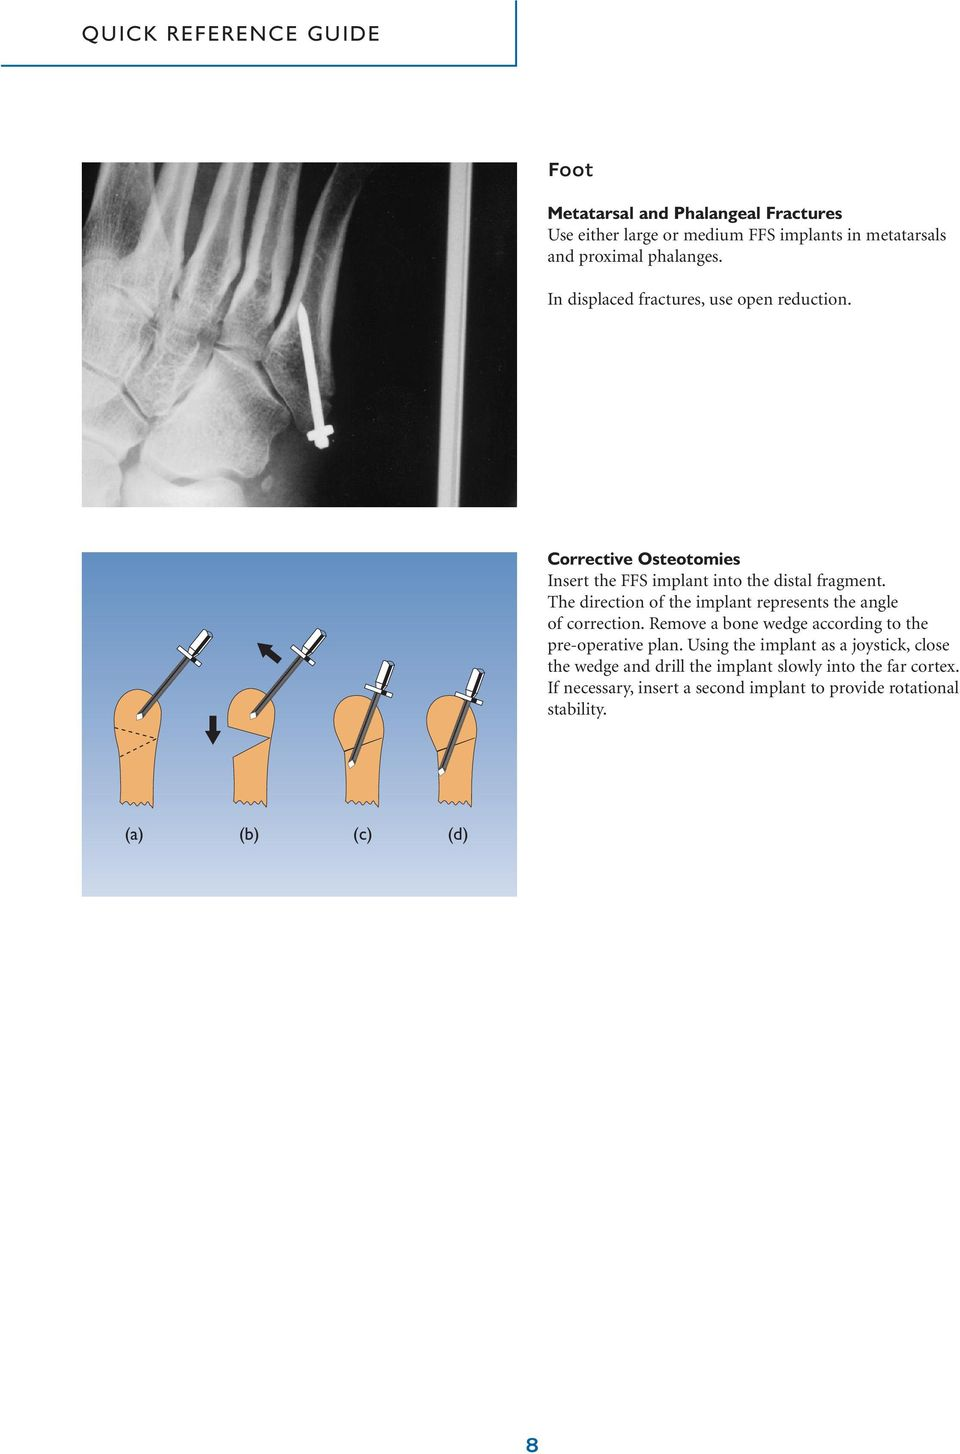 The direction of the implant represents the angle of correction. Remove a bone wedge according to the pre-operative plan.